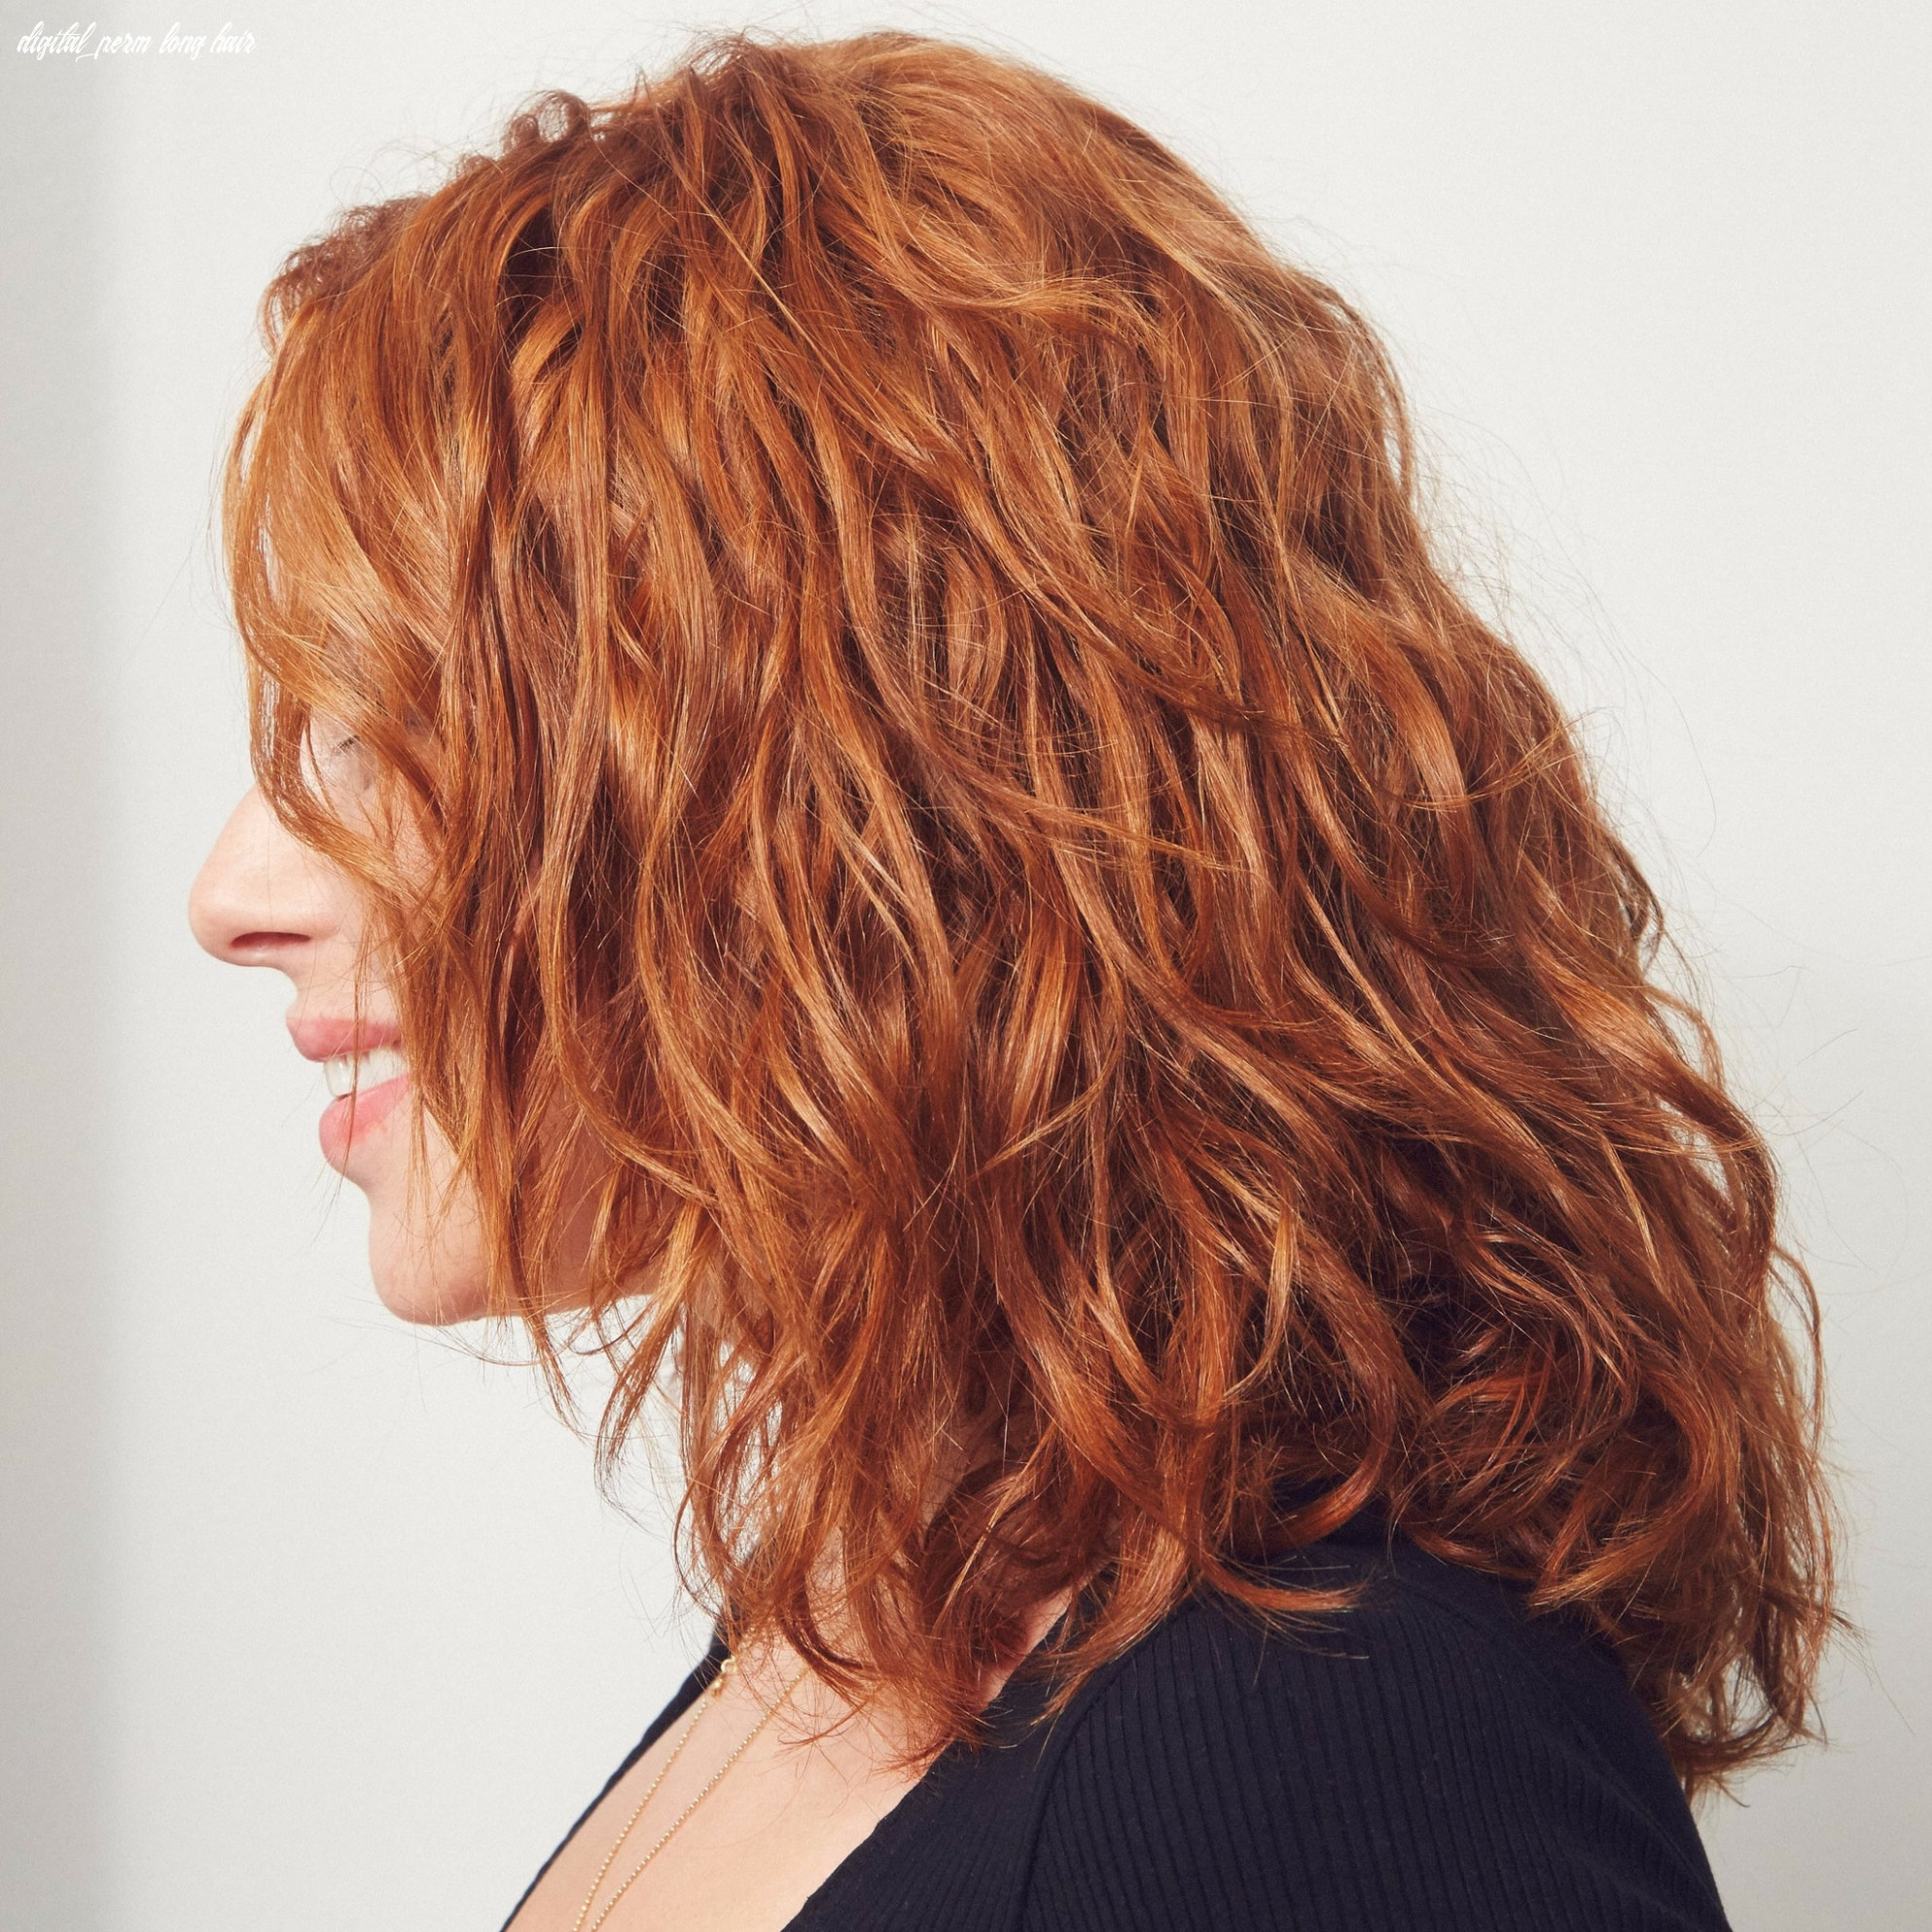 Digital perm | popsugar beauty digital perm long hair